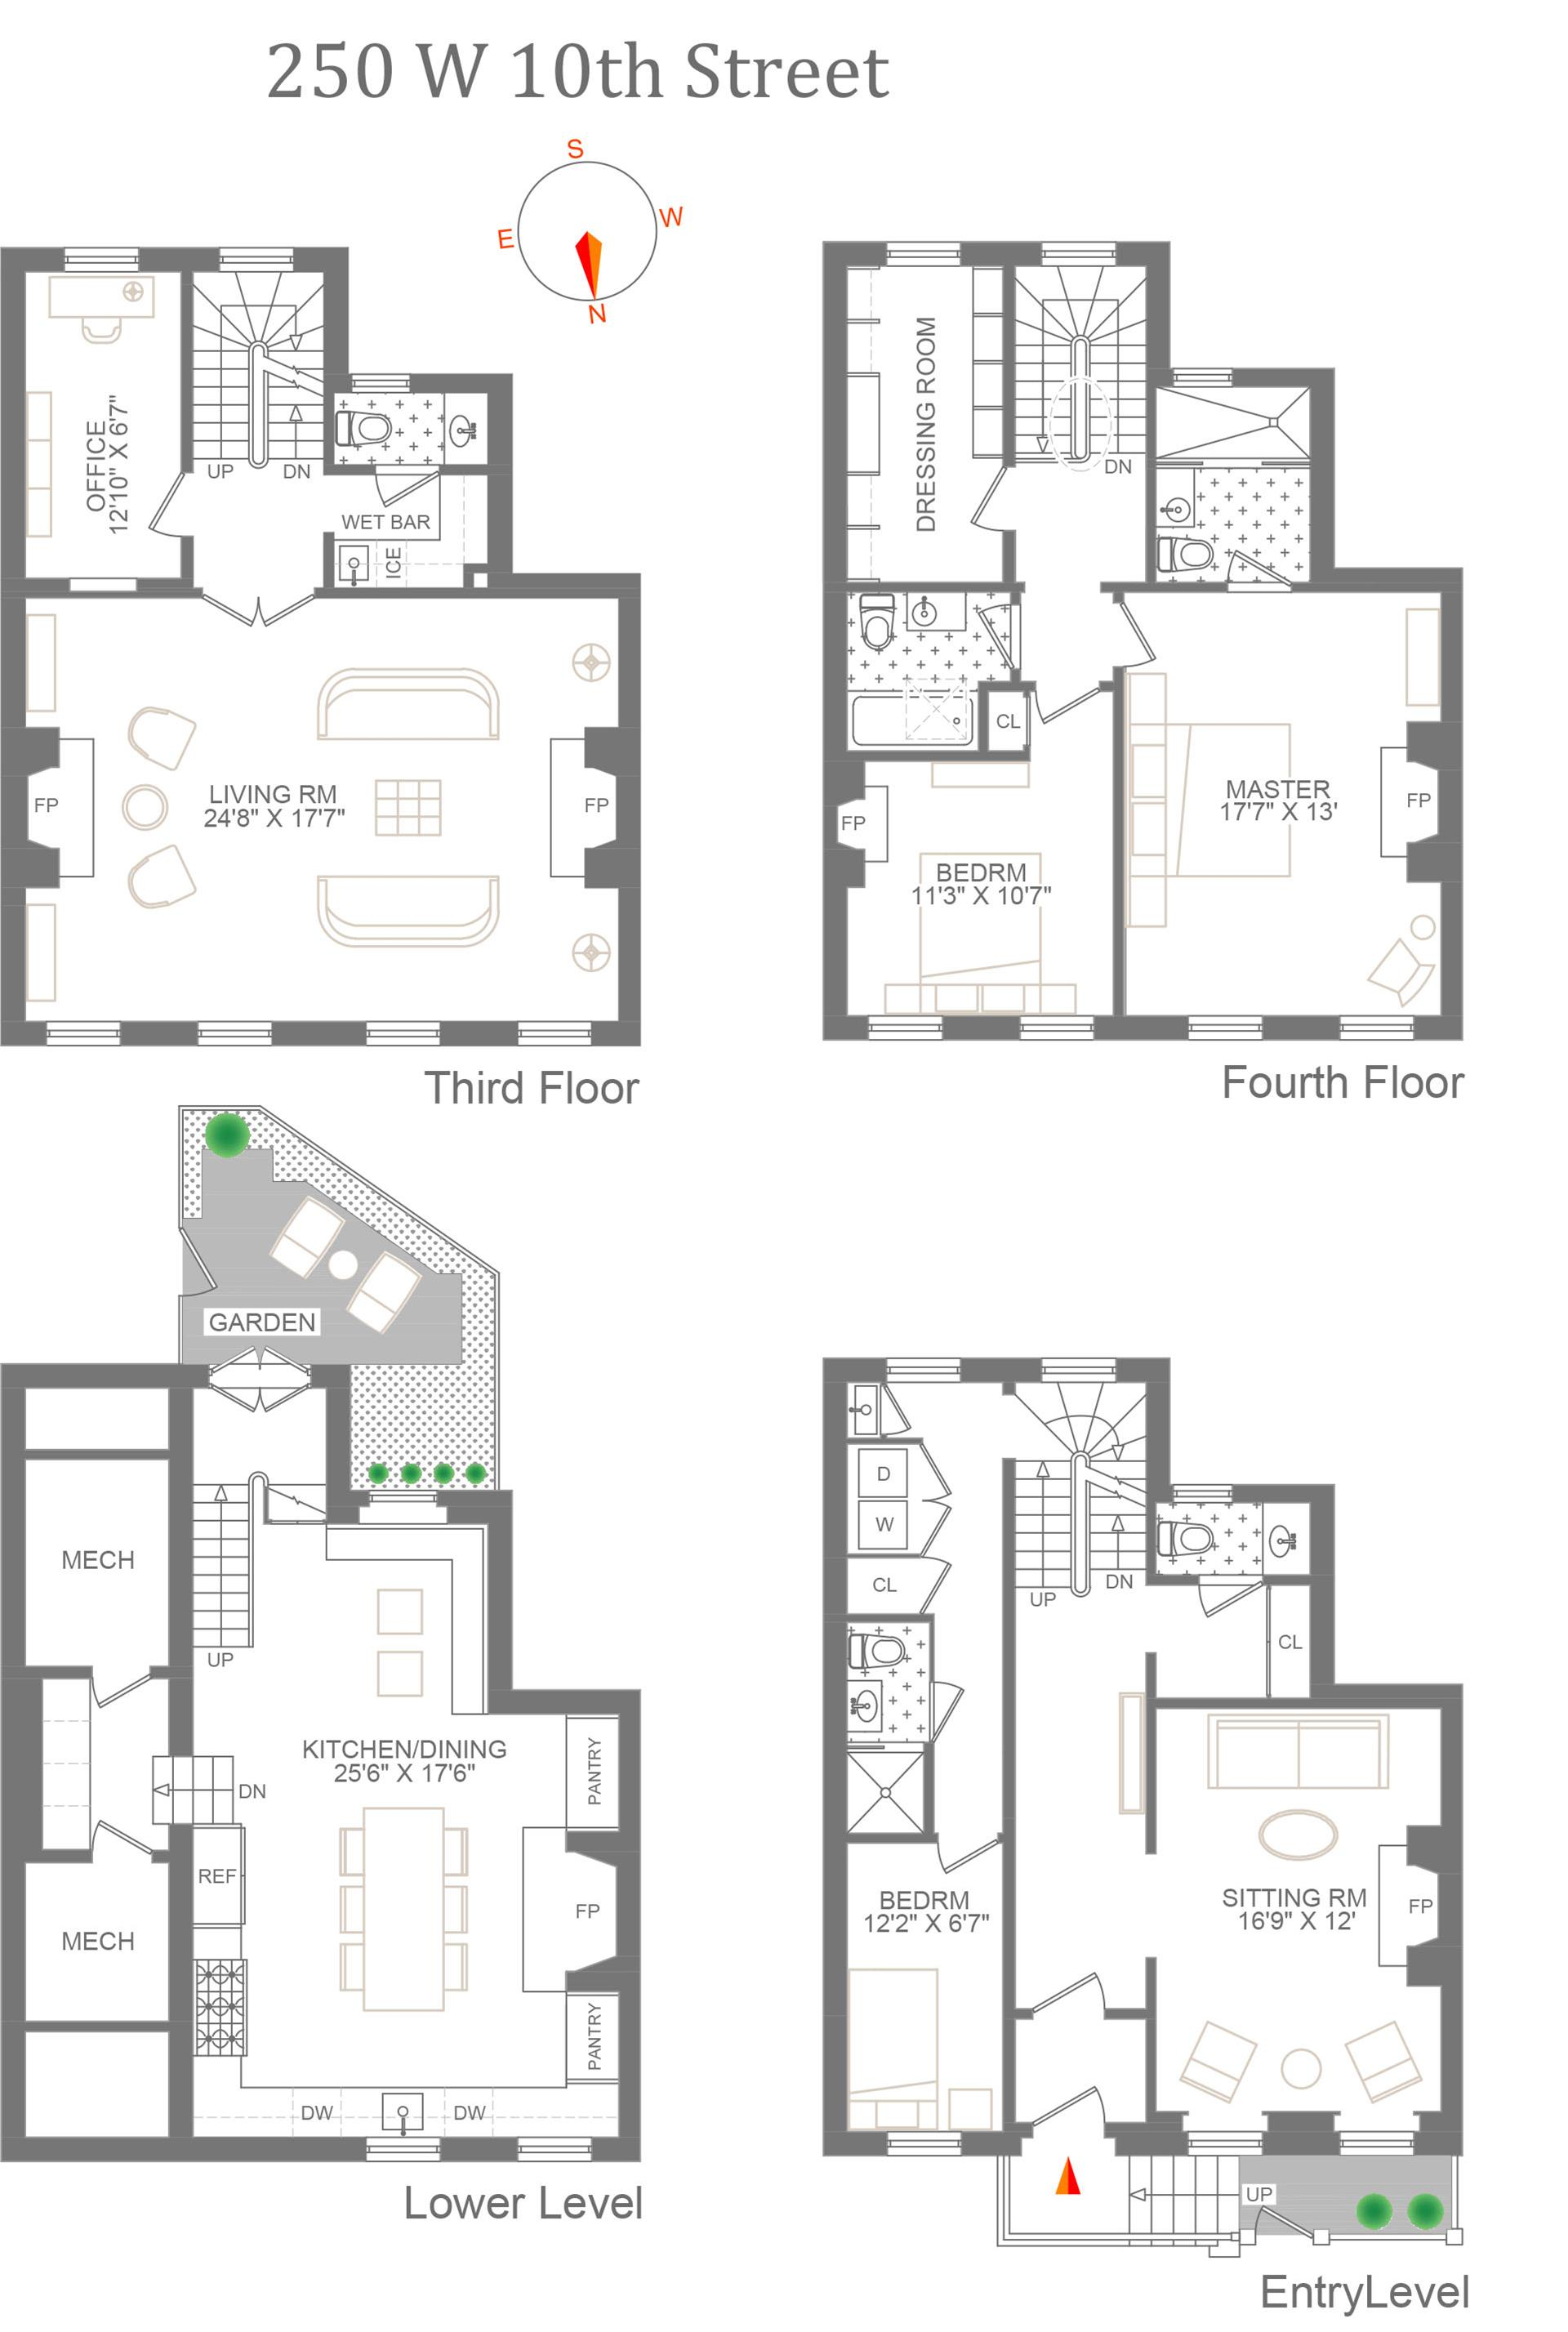 Floor plan of 250 West 10th St - West Village - Meatpacking District, New York